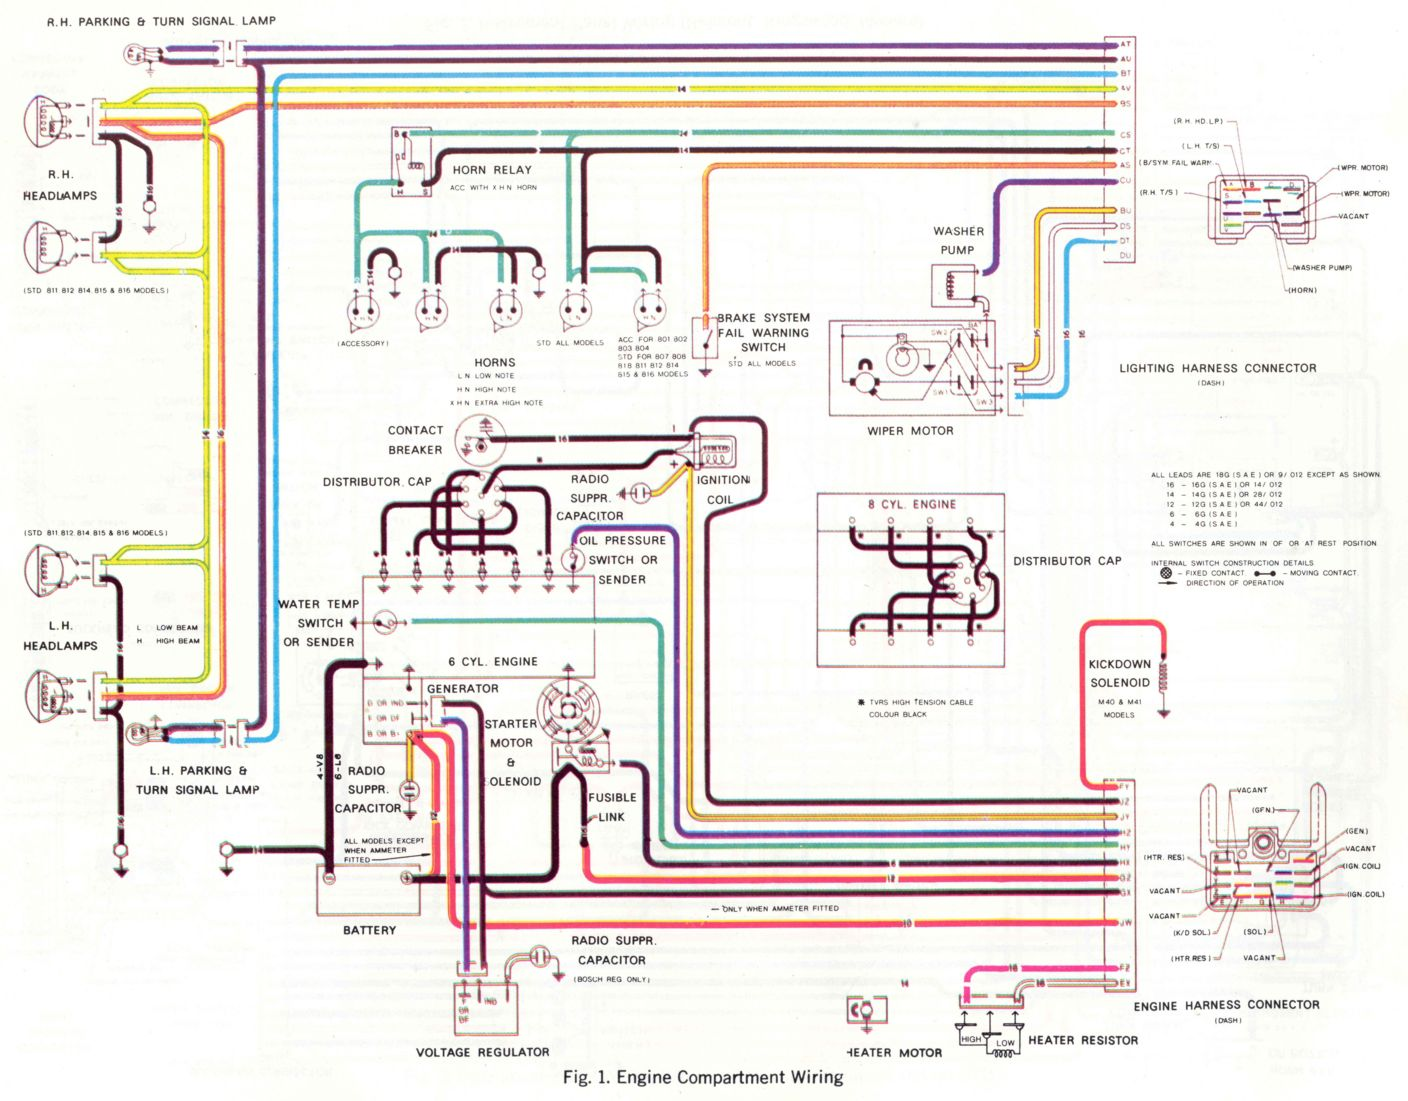 Holden 308 Wiring Diagram | Get Free Image About Wiring Diagram